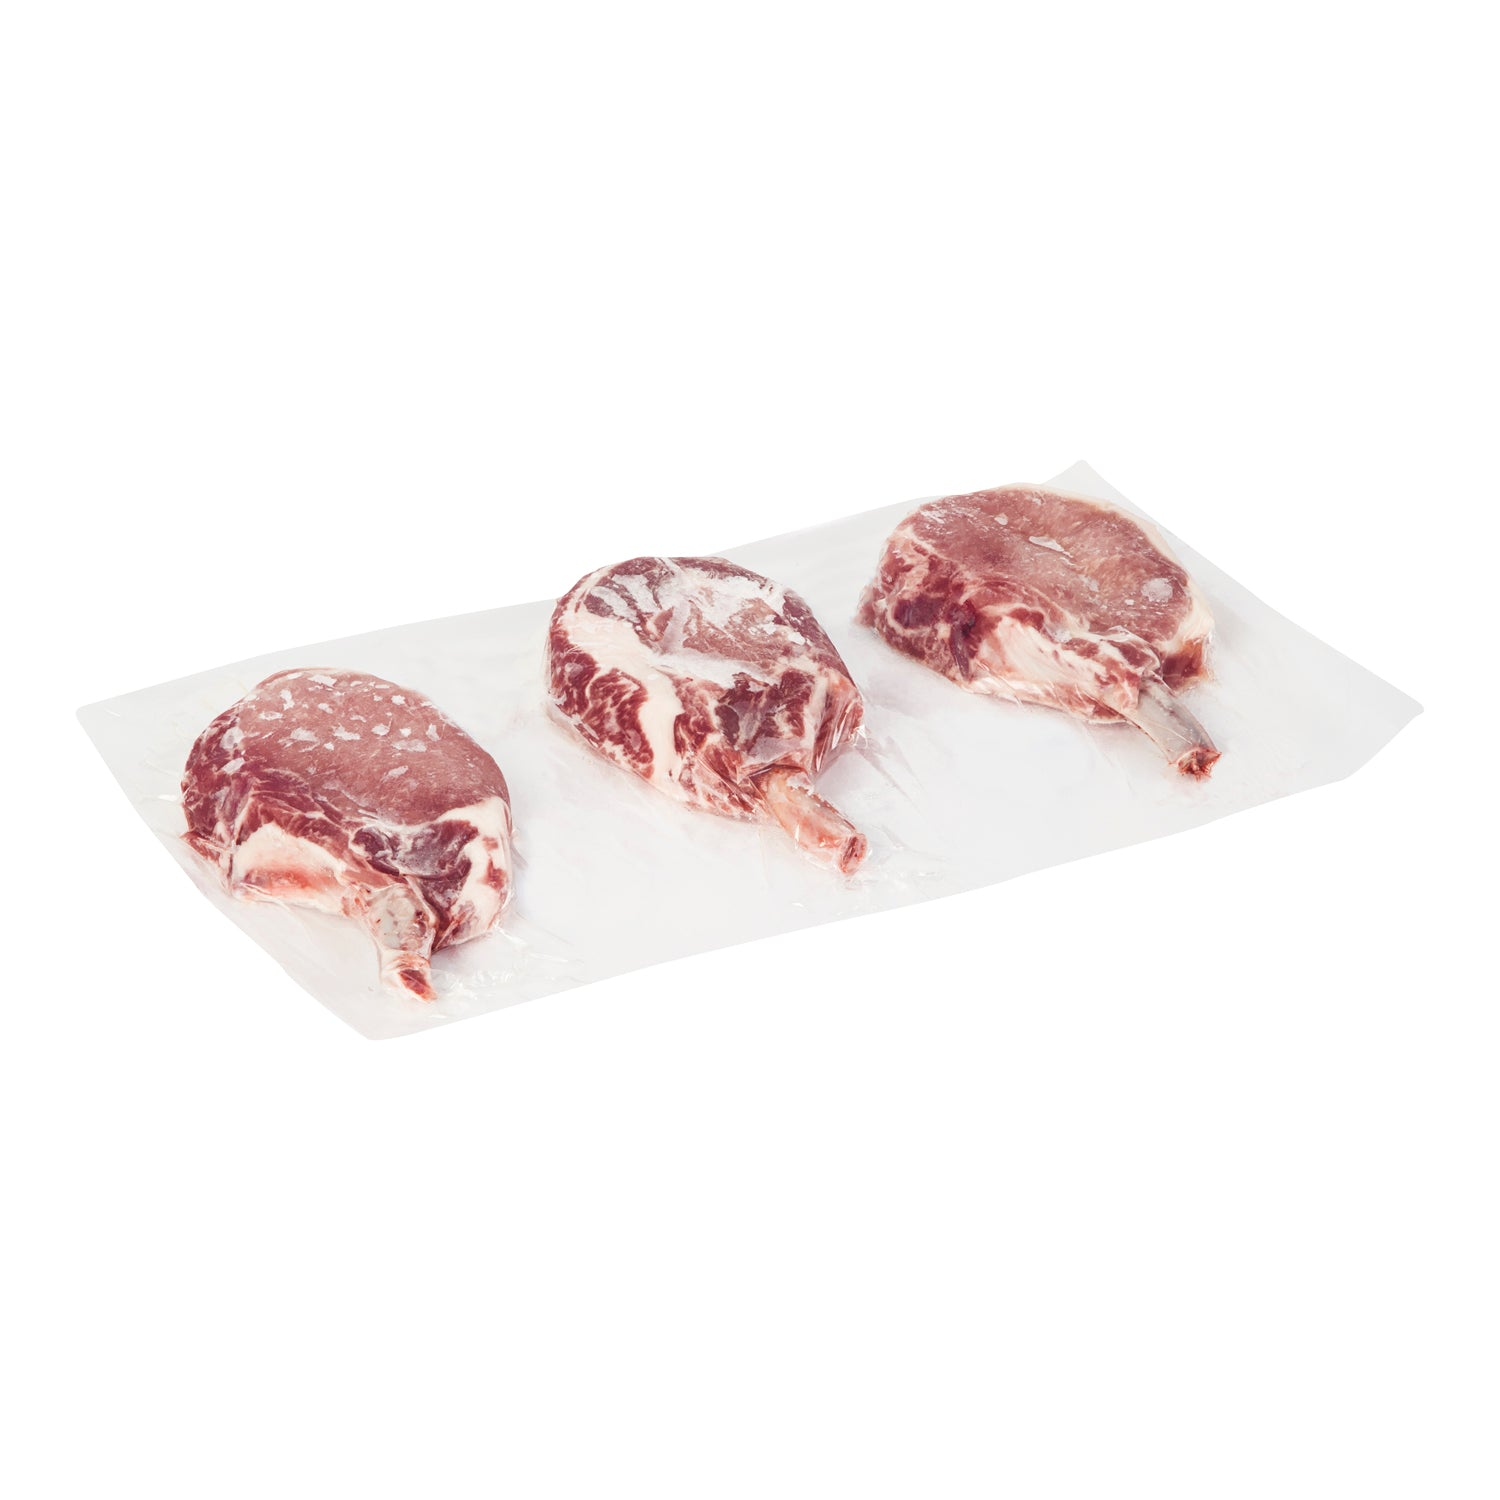 Sysco Butcher Block Frozen Frenched Bone-in Pork Chops 10 oz - 16 Pack [$5.59/each]